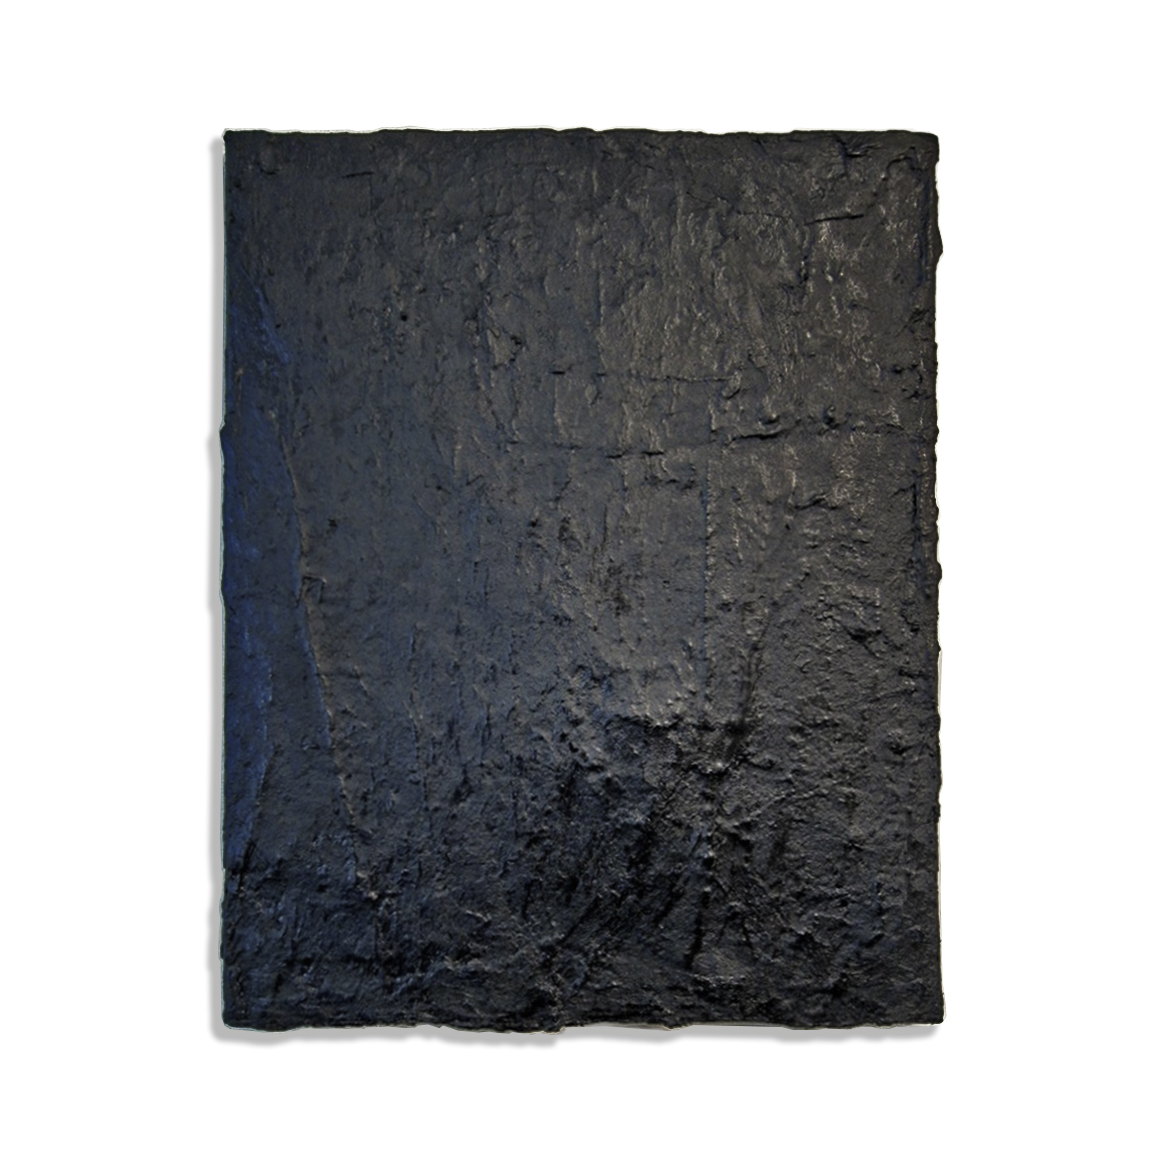 "Untitled (Tarred Canvas), 2015, roofing tar over acrylic on canvas, 18"" x 14"""